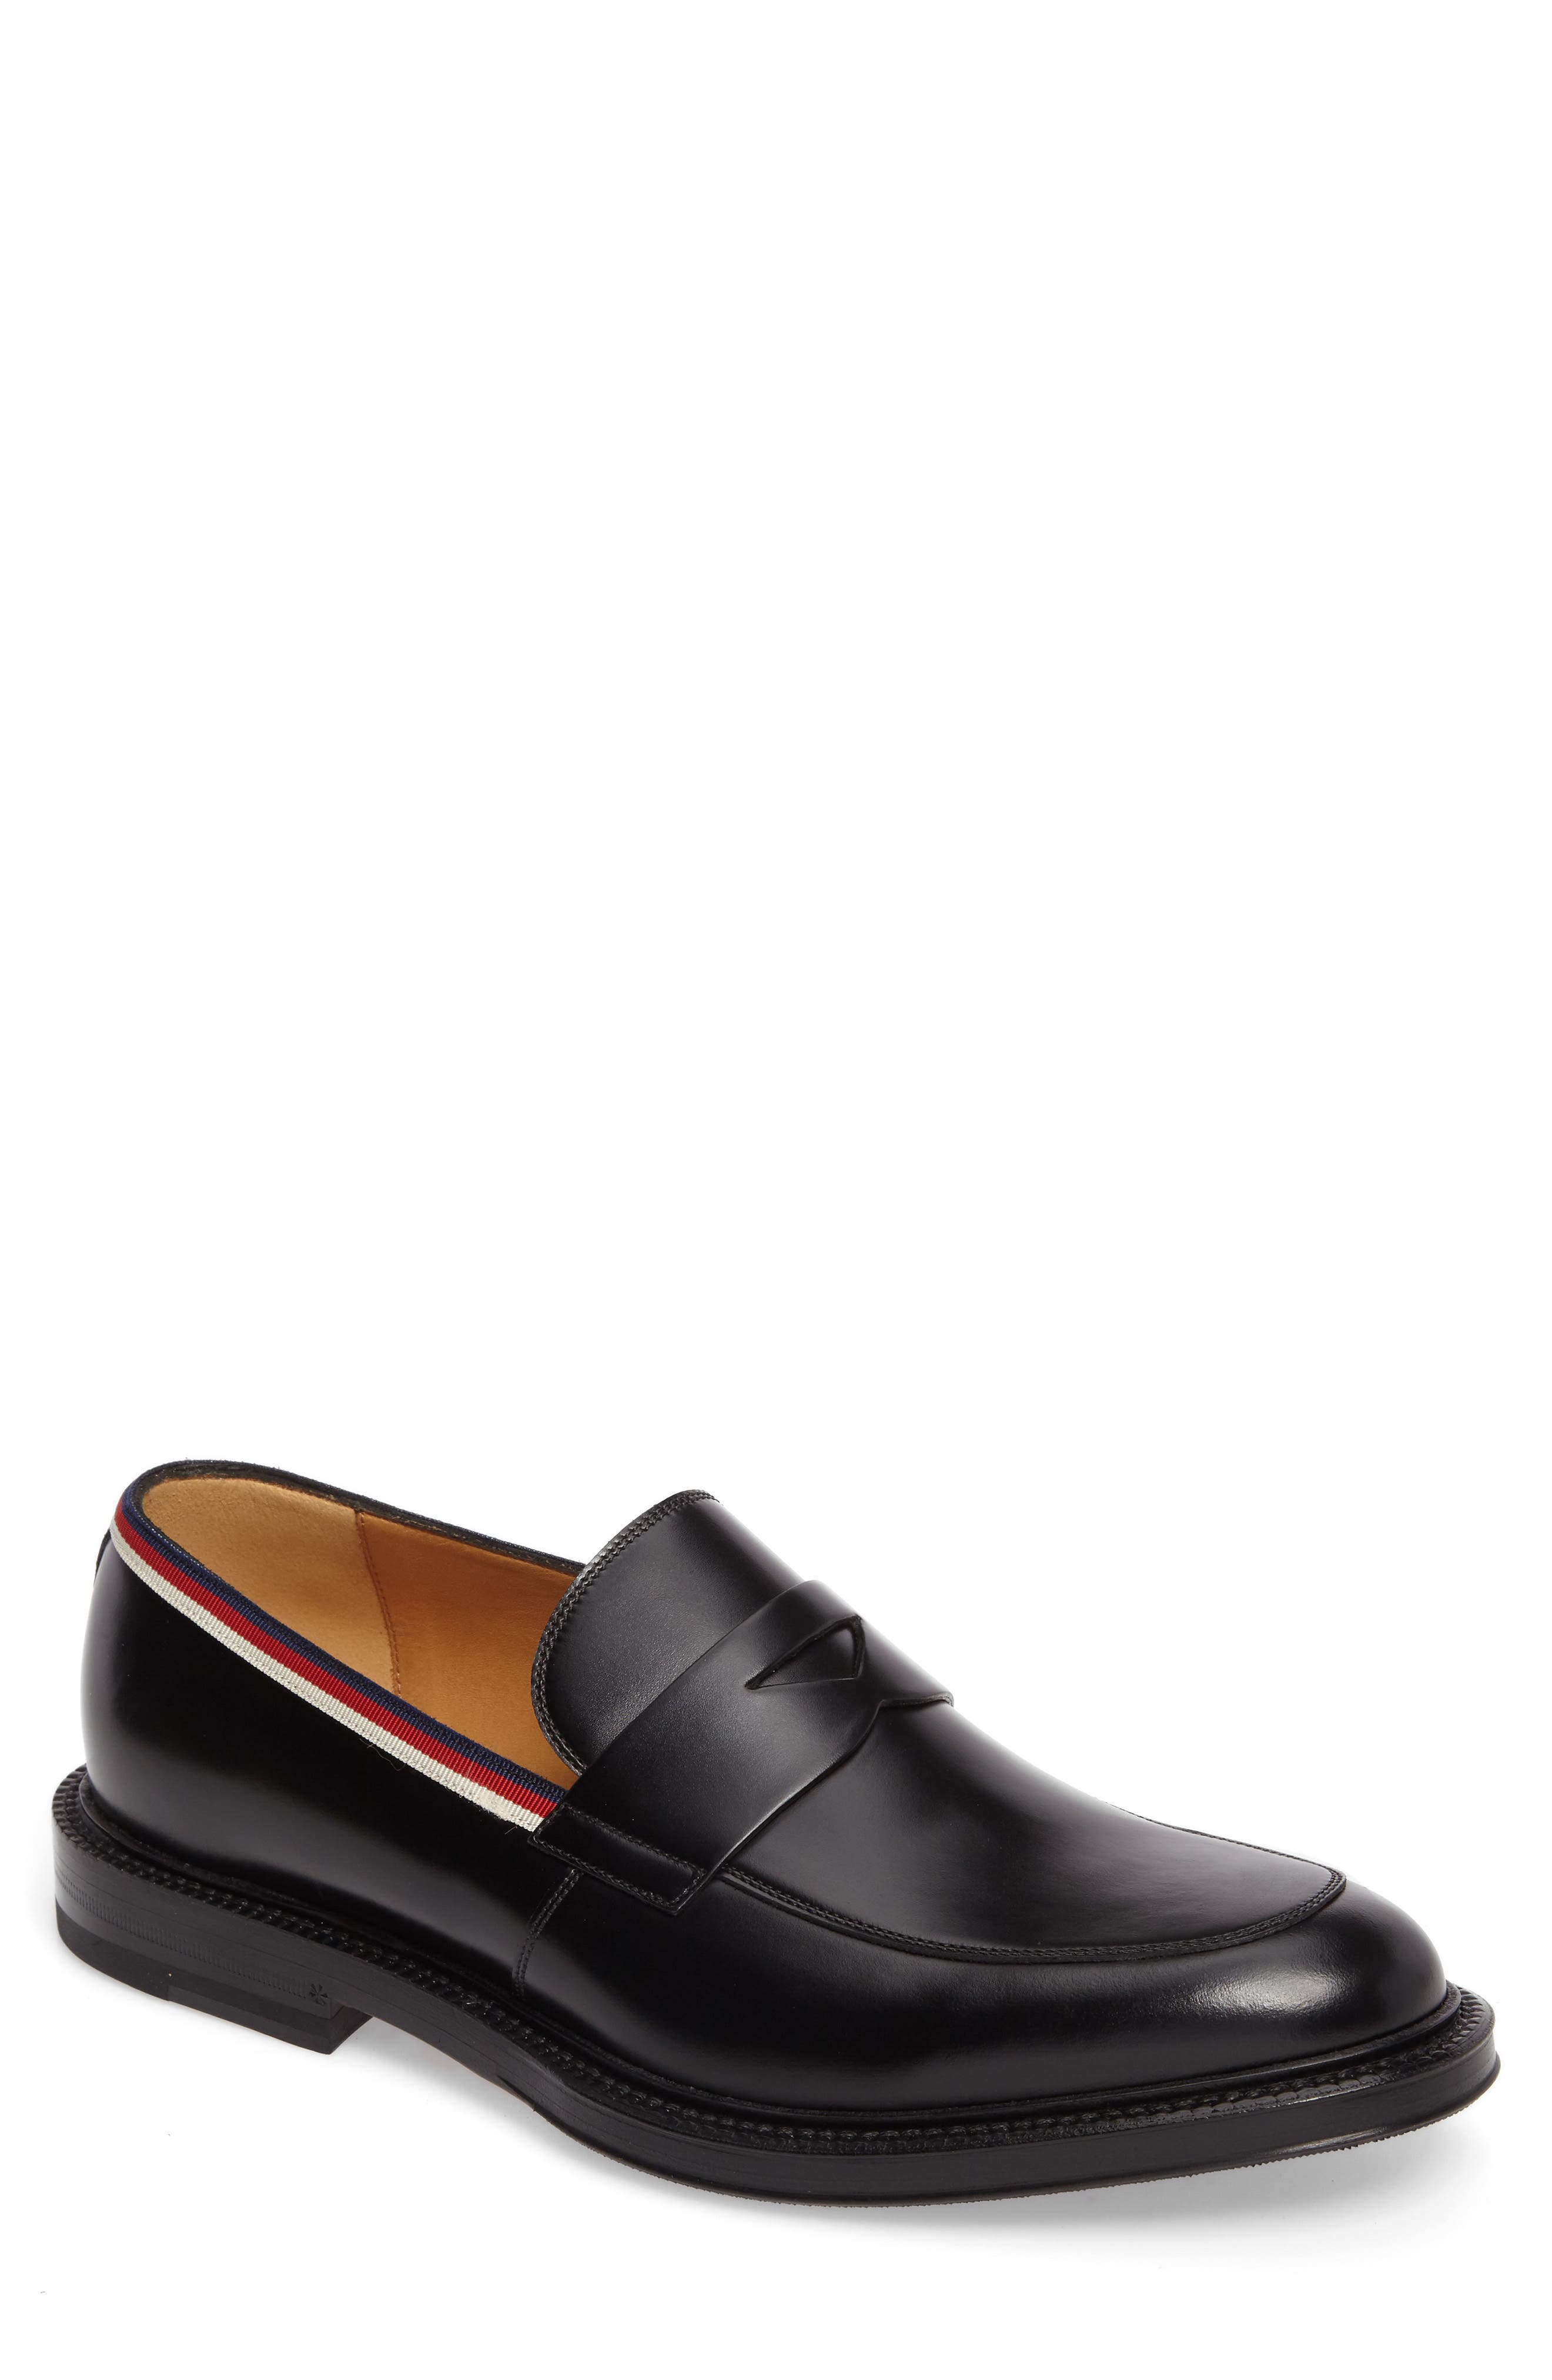 Beyond Penny Loafer,                         Main,                         color, Black